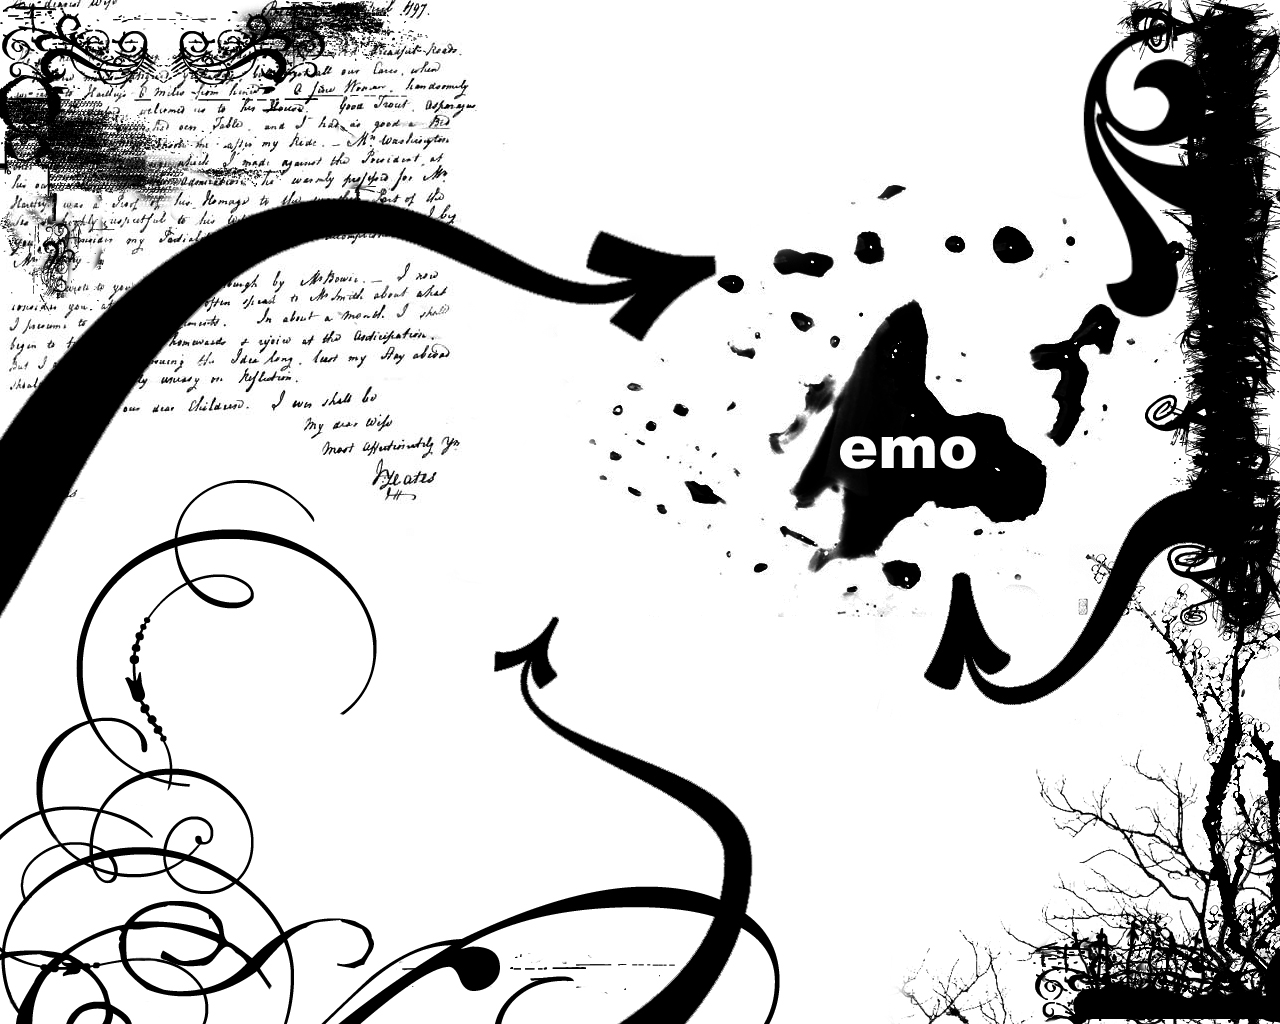 1280x1024 Emo Wallpapers Emo Wallpaper Emo Girls Emo Boys Emo